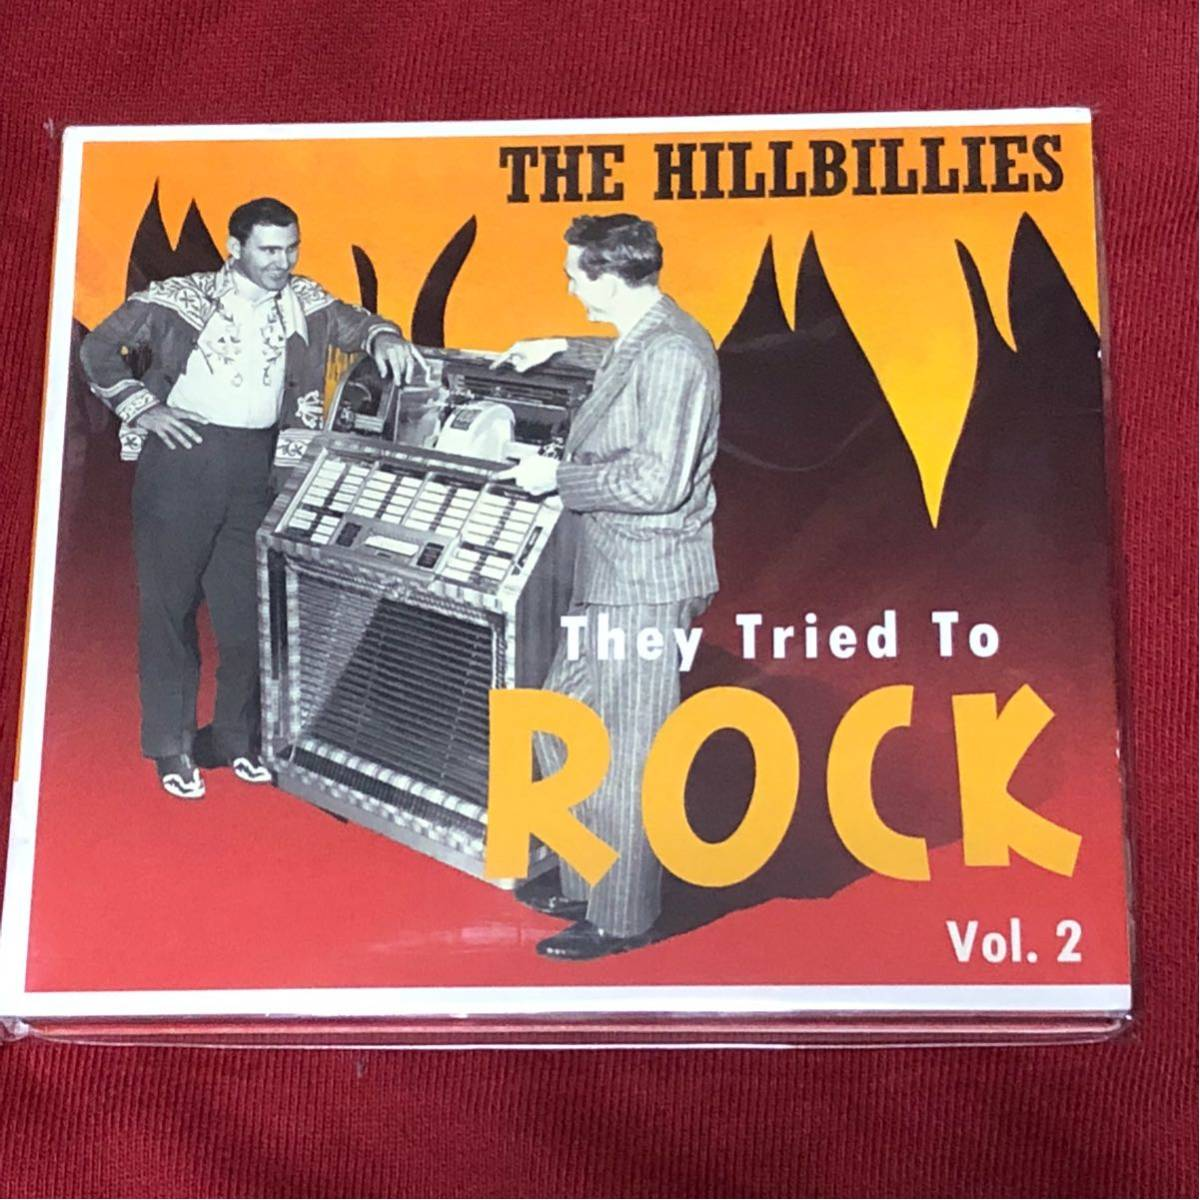 「THE HILLBILLIES THEY TRIED TO ROCK VOL.2」50'sロカビリーコンピ盤ベアファミリー